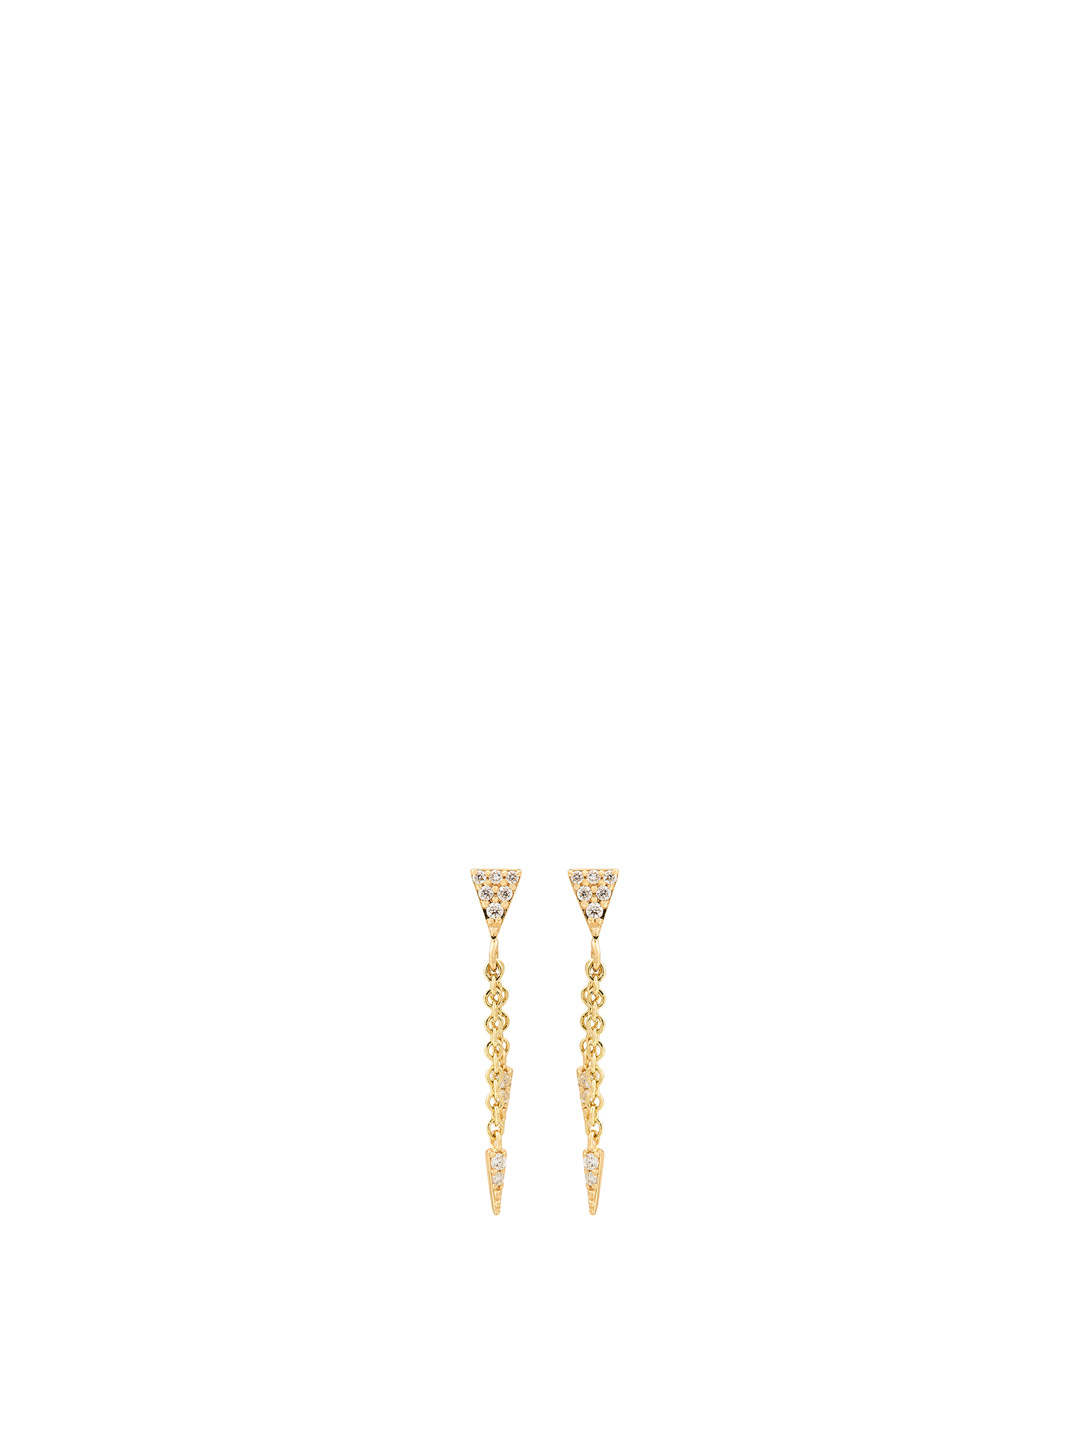 SYDNEY EVAN 14K Gold Fringe Drop Earrings With Diamonds Women's Metallic